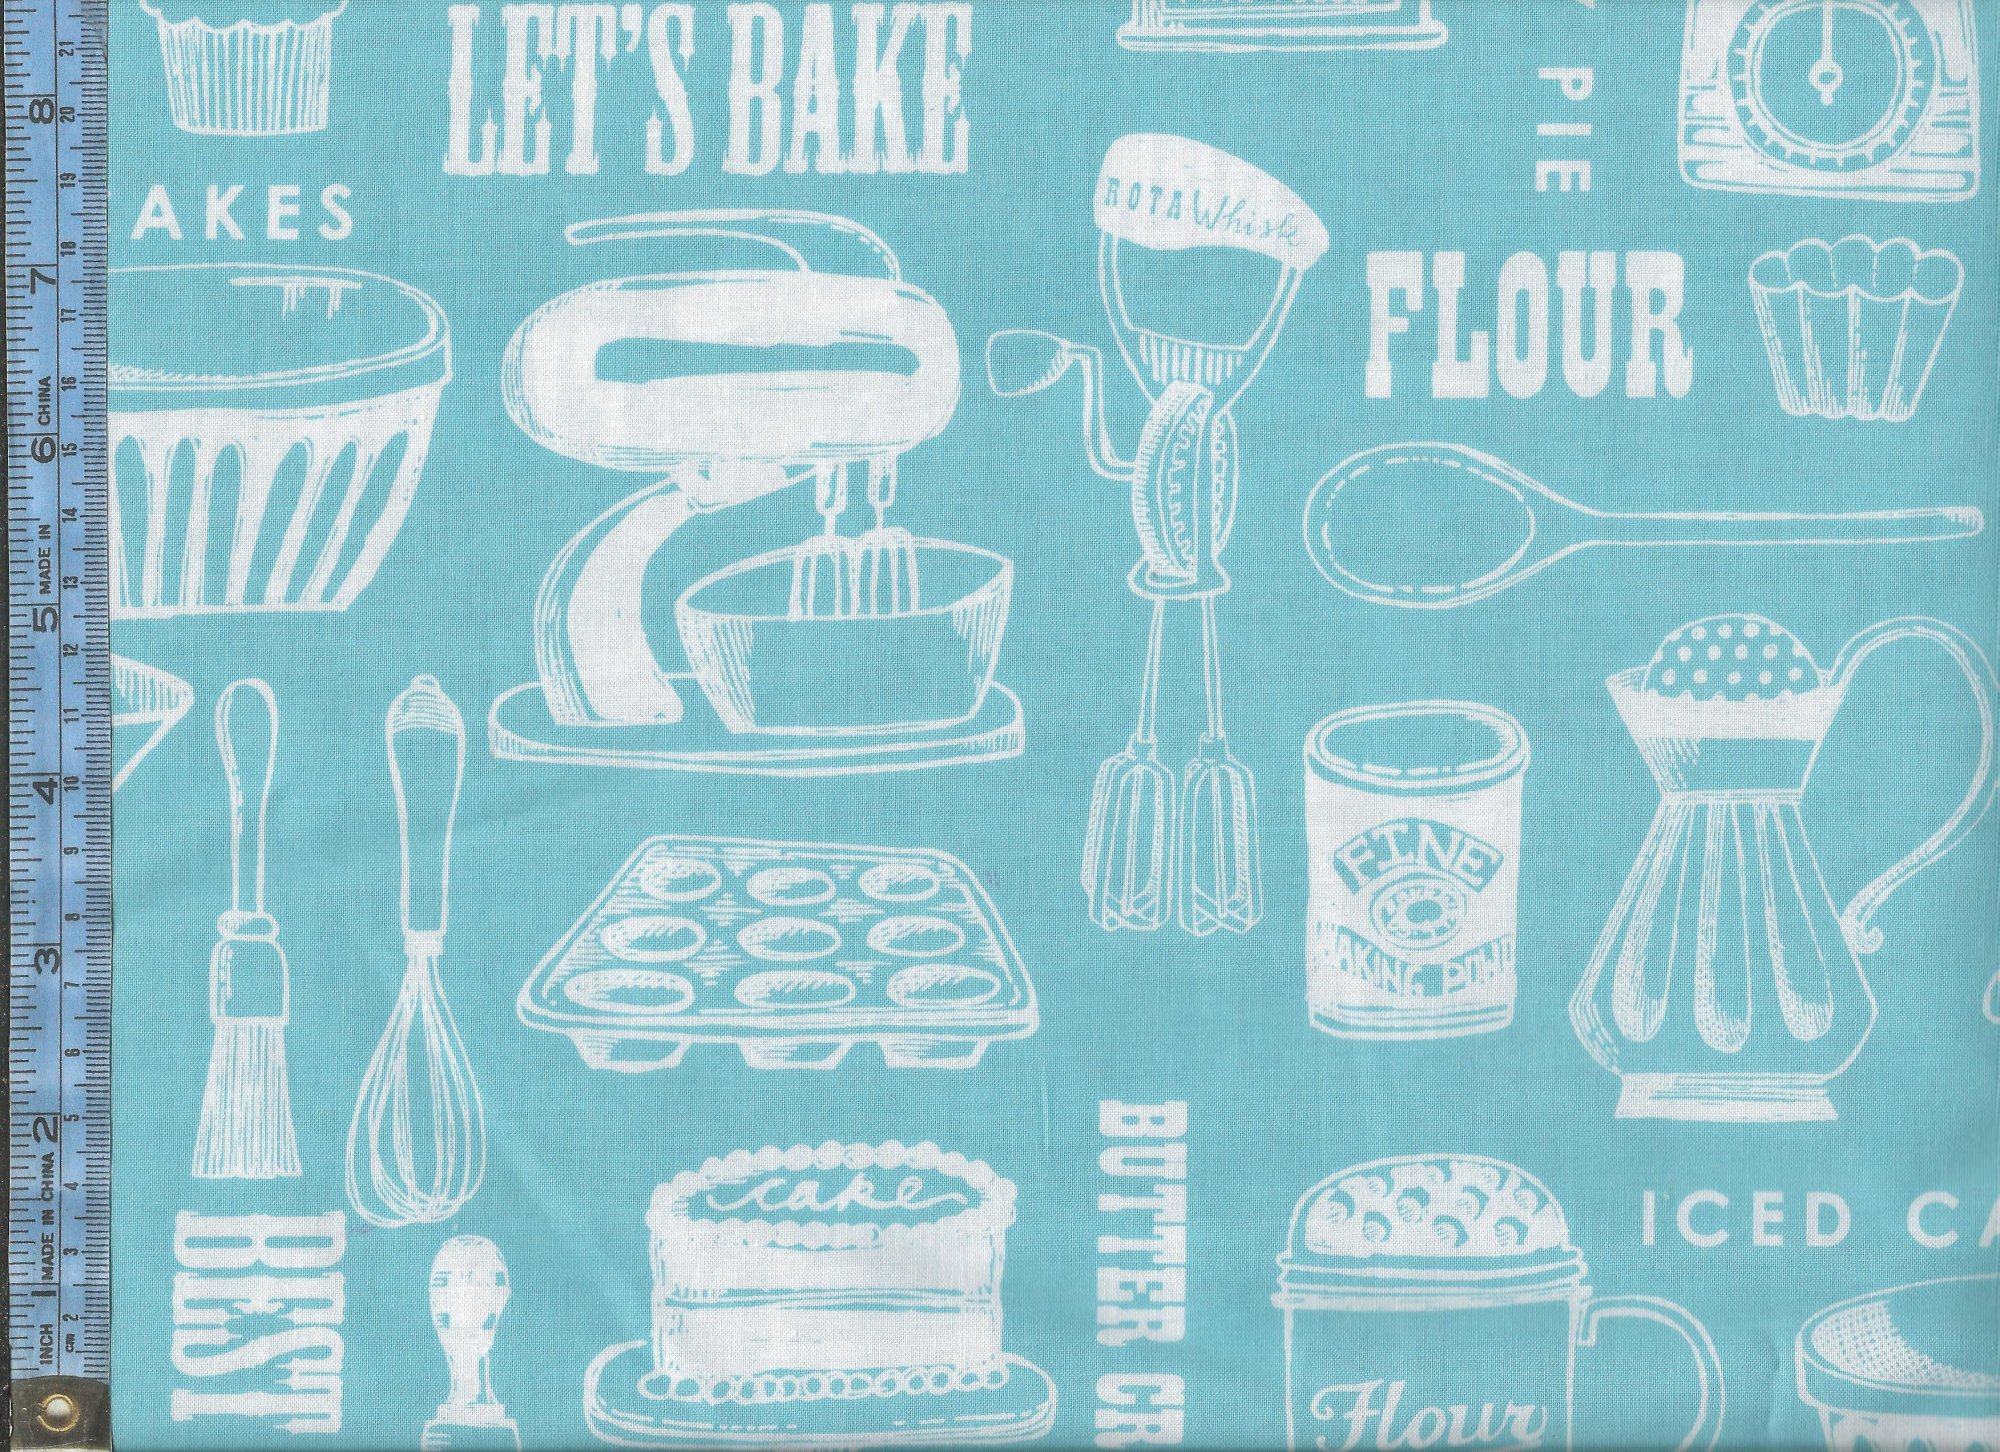 Butter Cream - white kitchen utensils on turquoise background